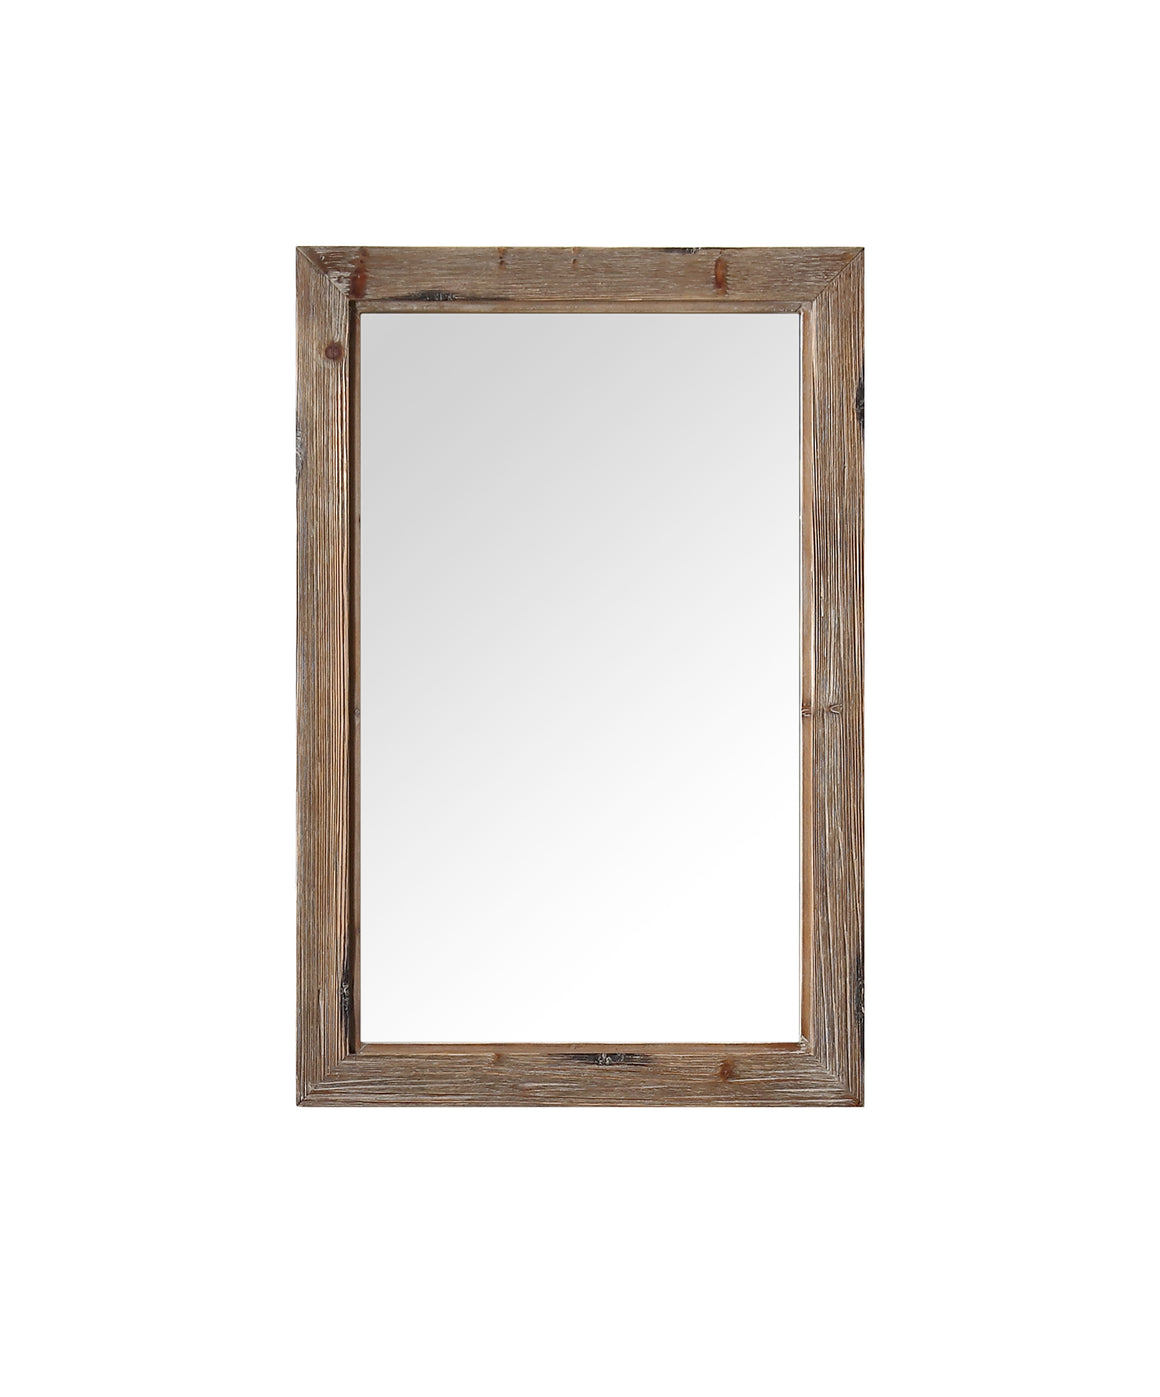 "24"" Rustic Fir Mirror with Distressed Finish"